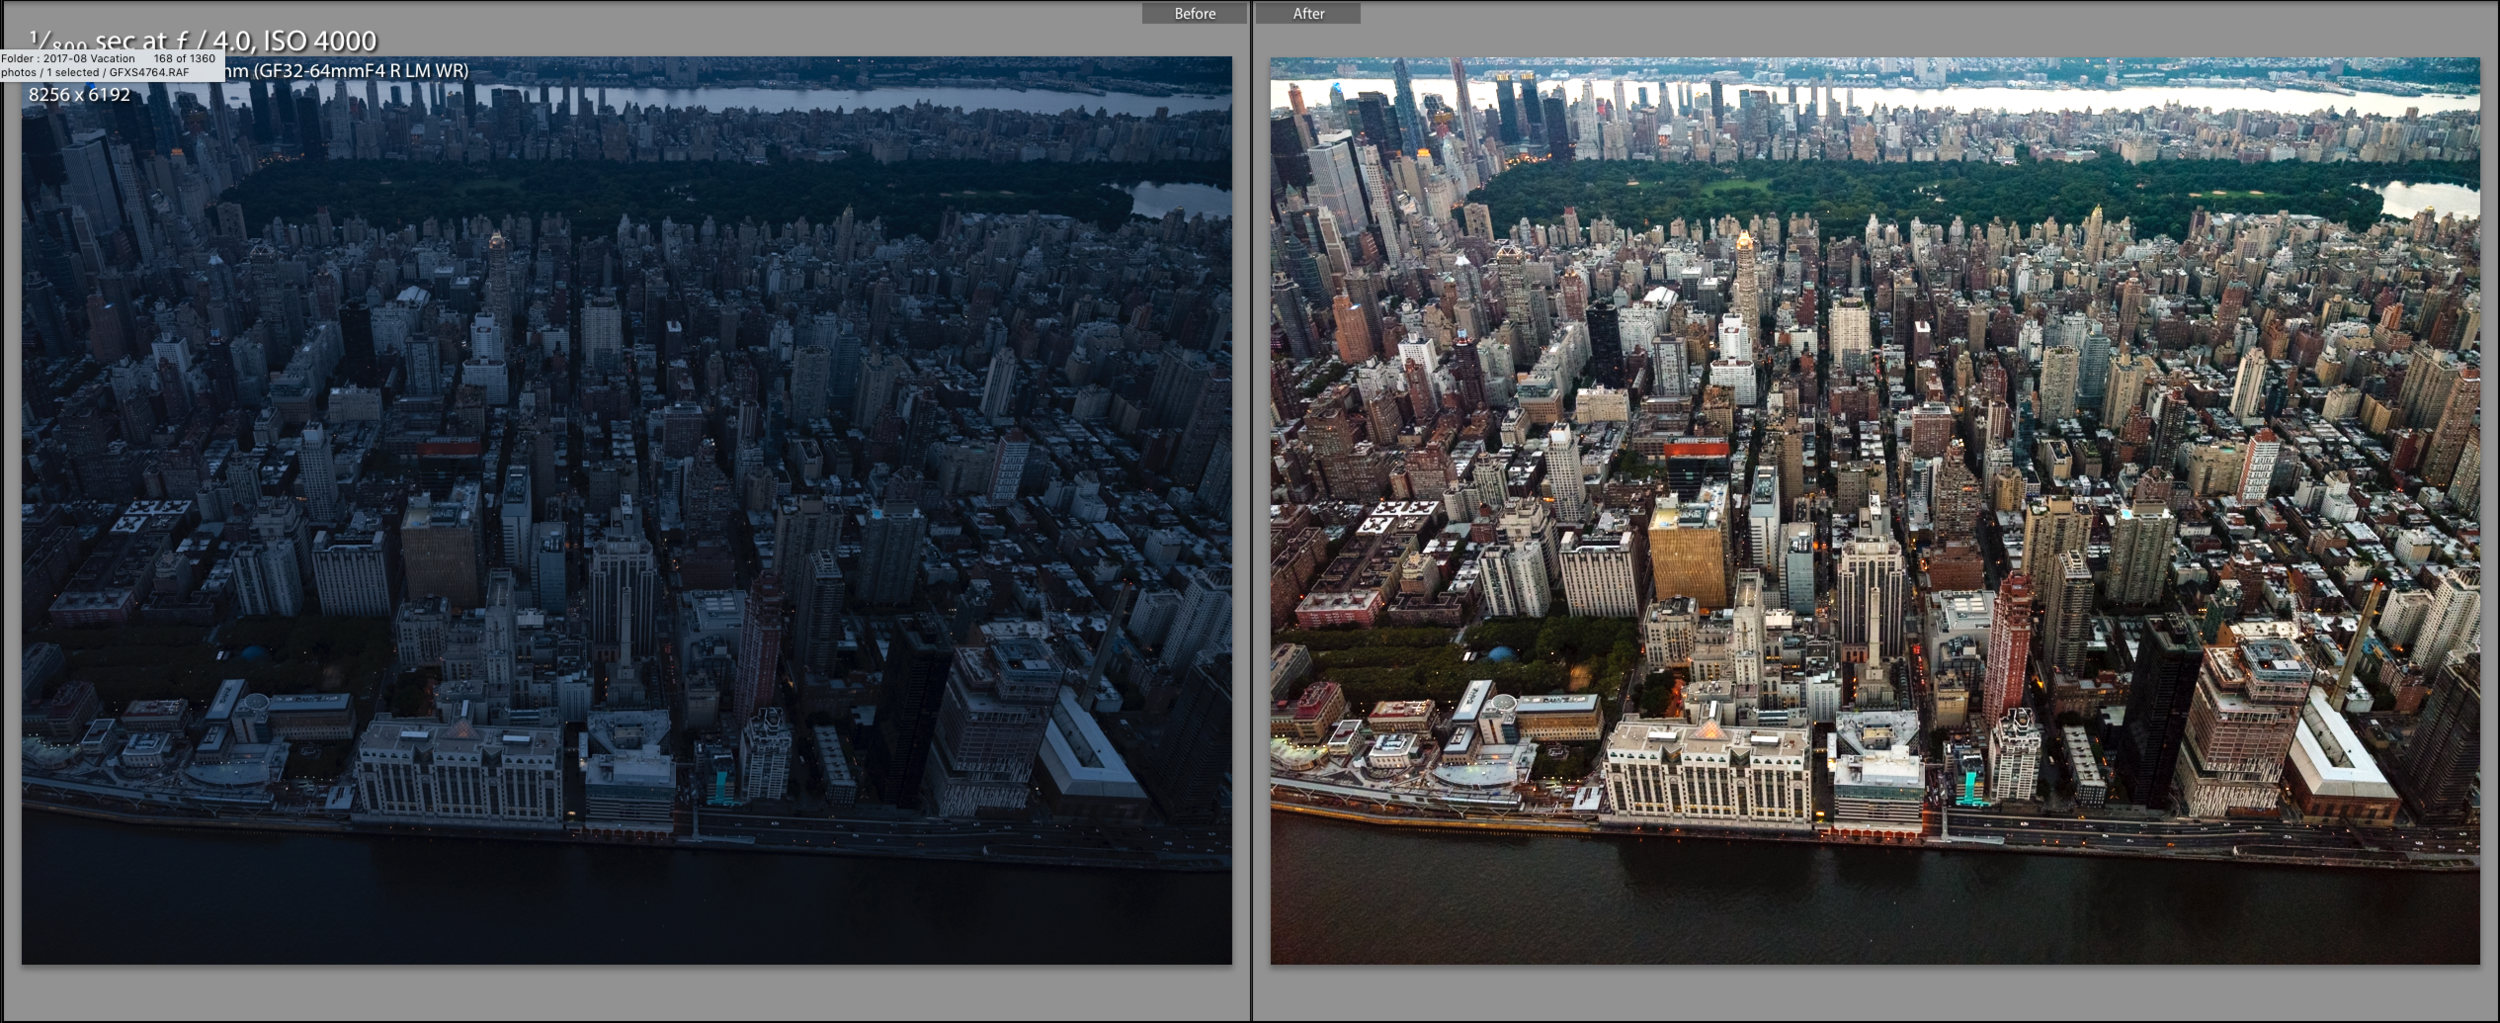 Straight out of camera RAW on the left | Final edited photo on the right. (Click to enlarge)